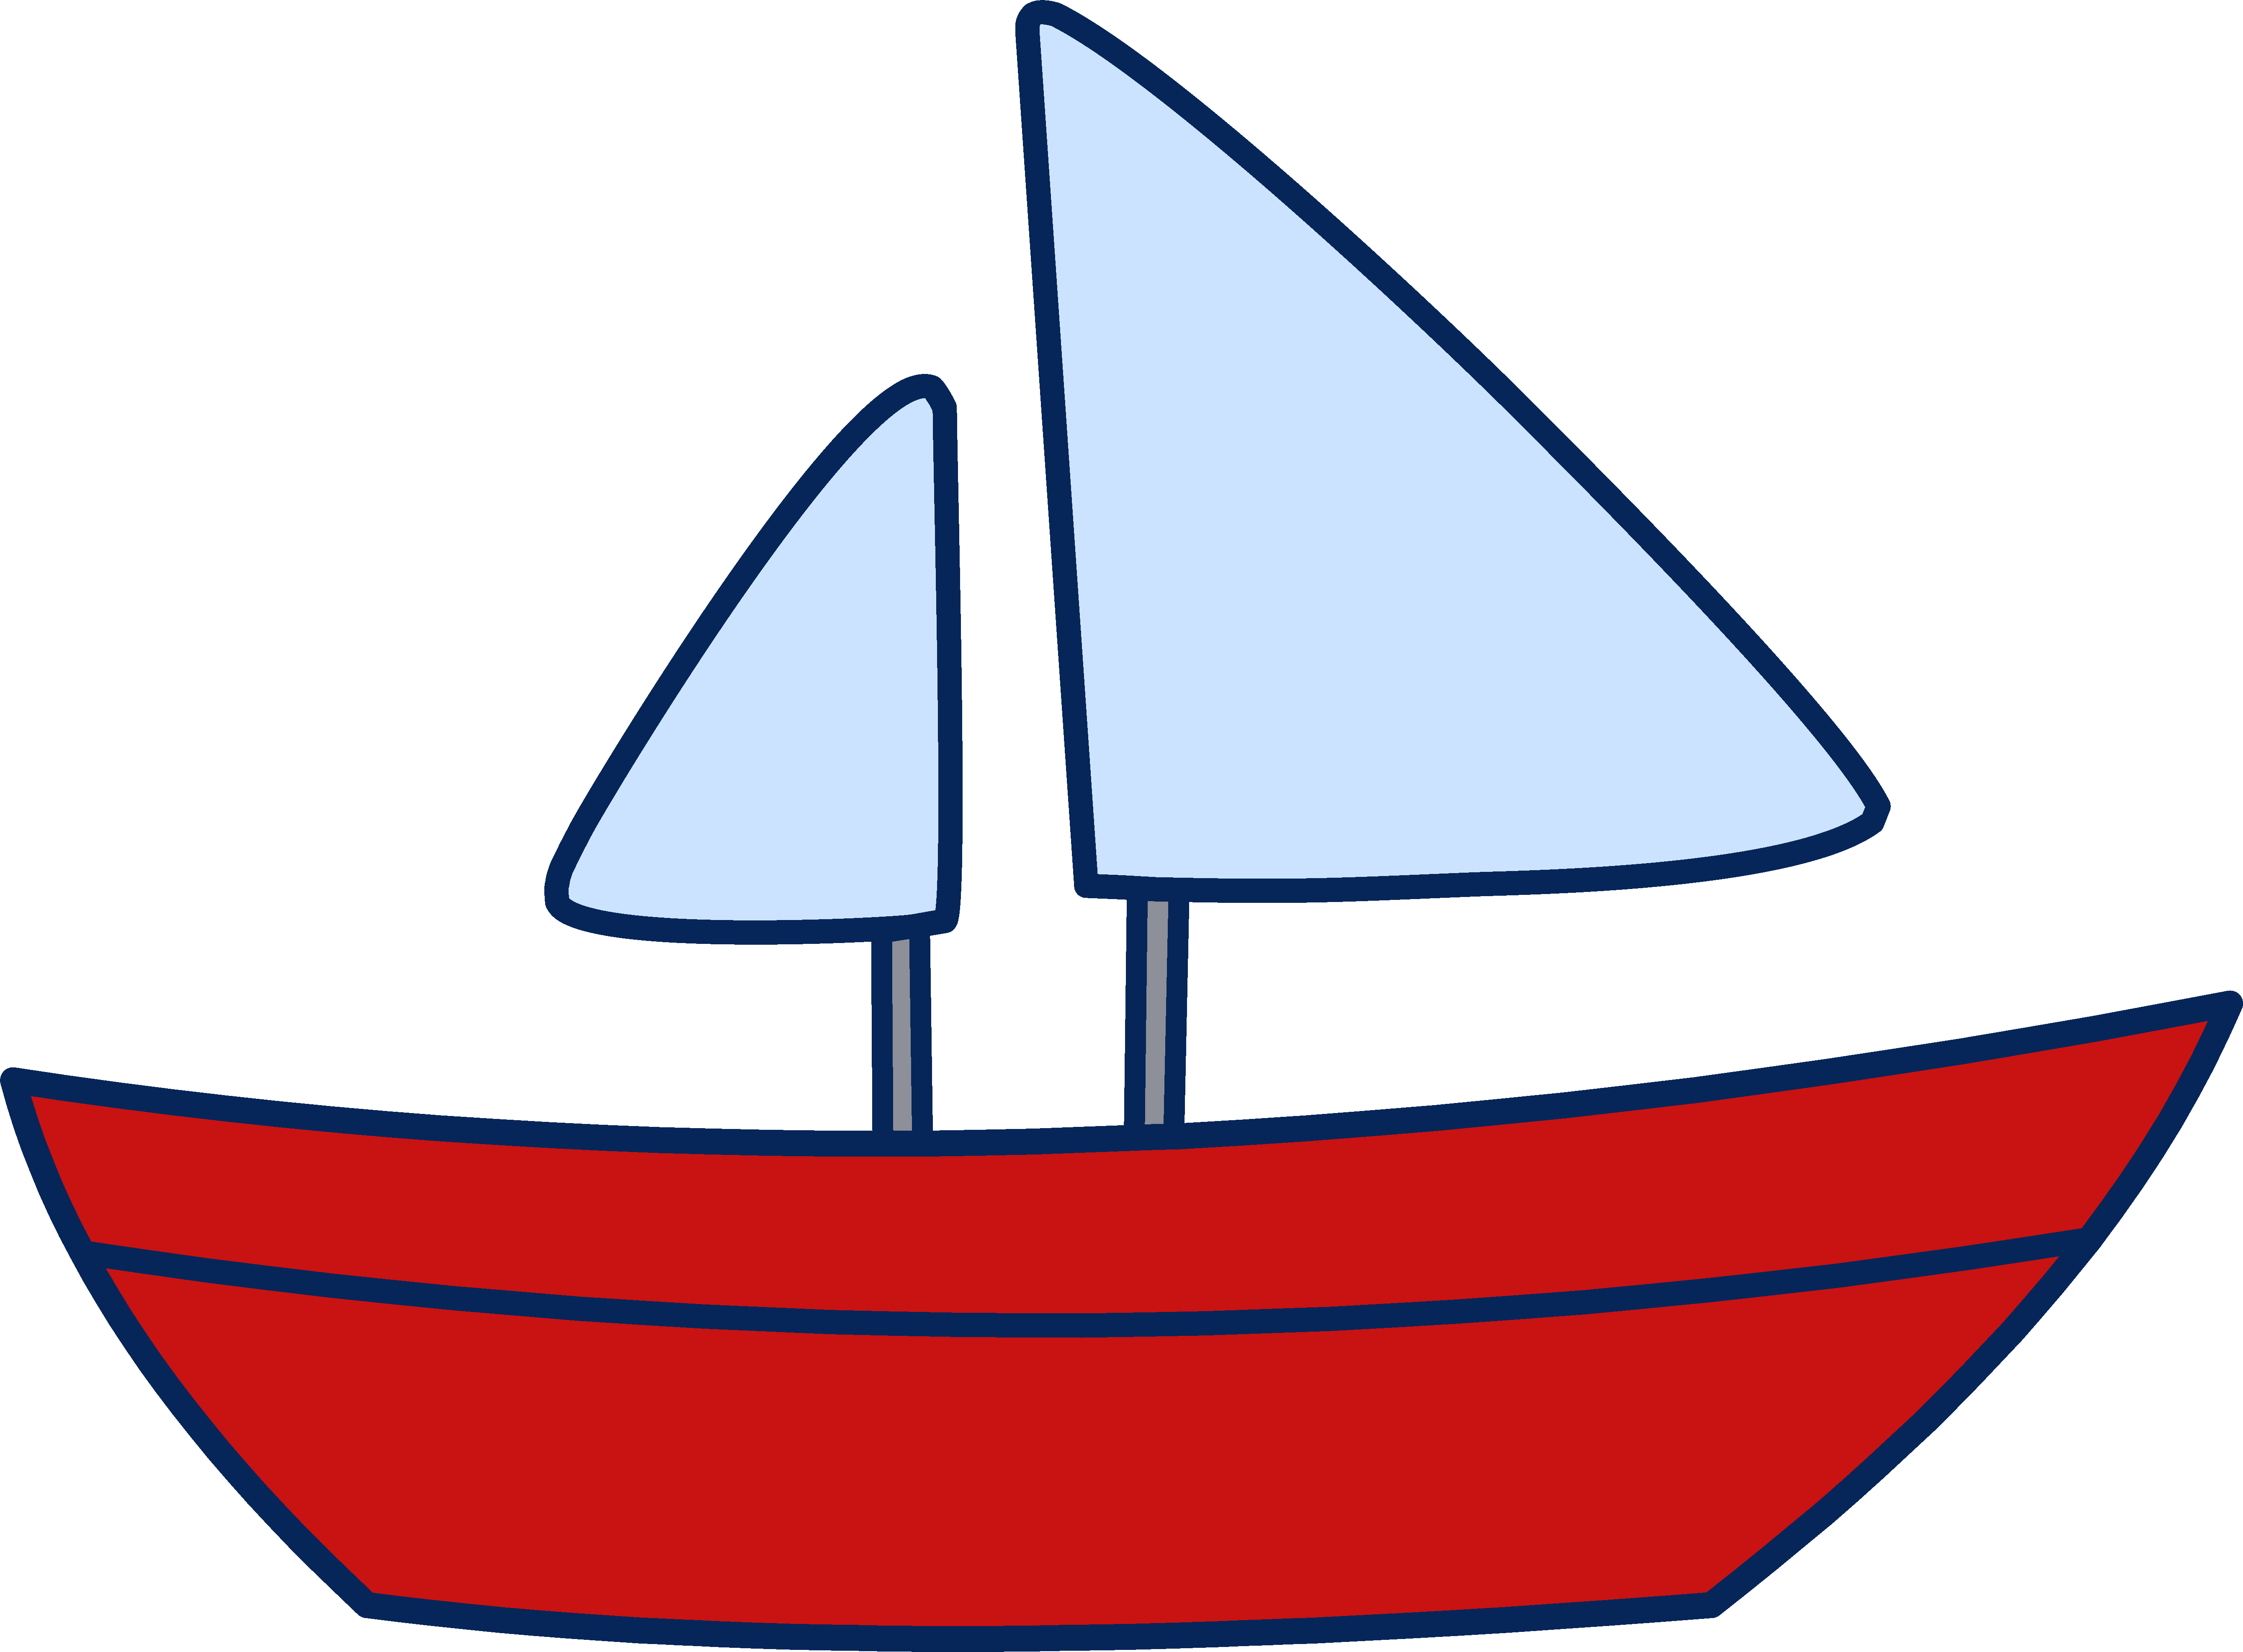 Boat Clipart Sail - Clipart Boat